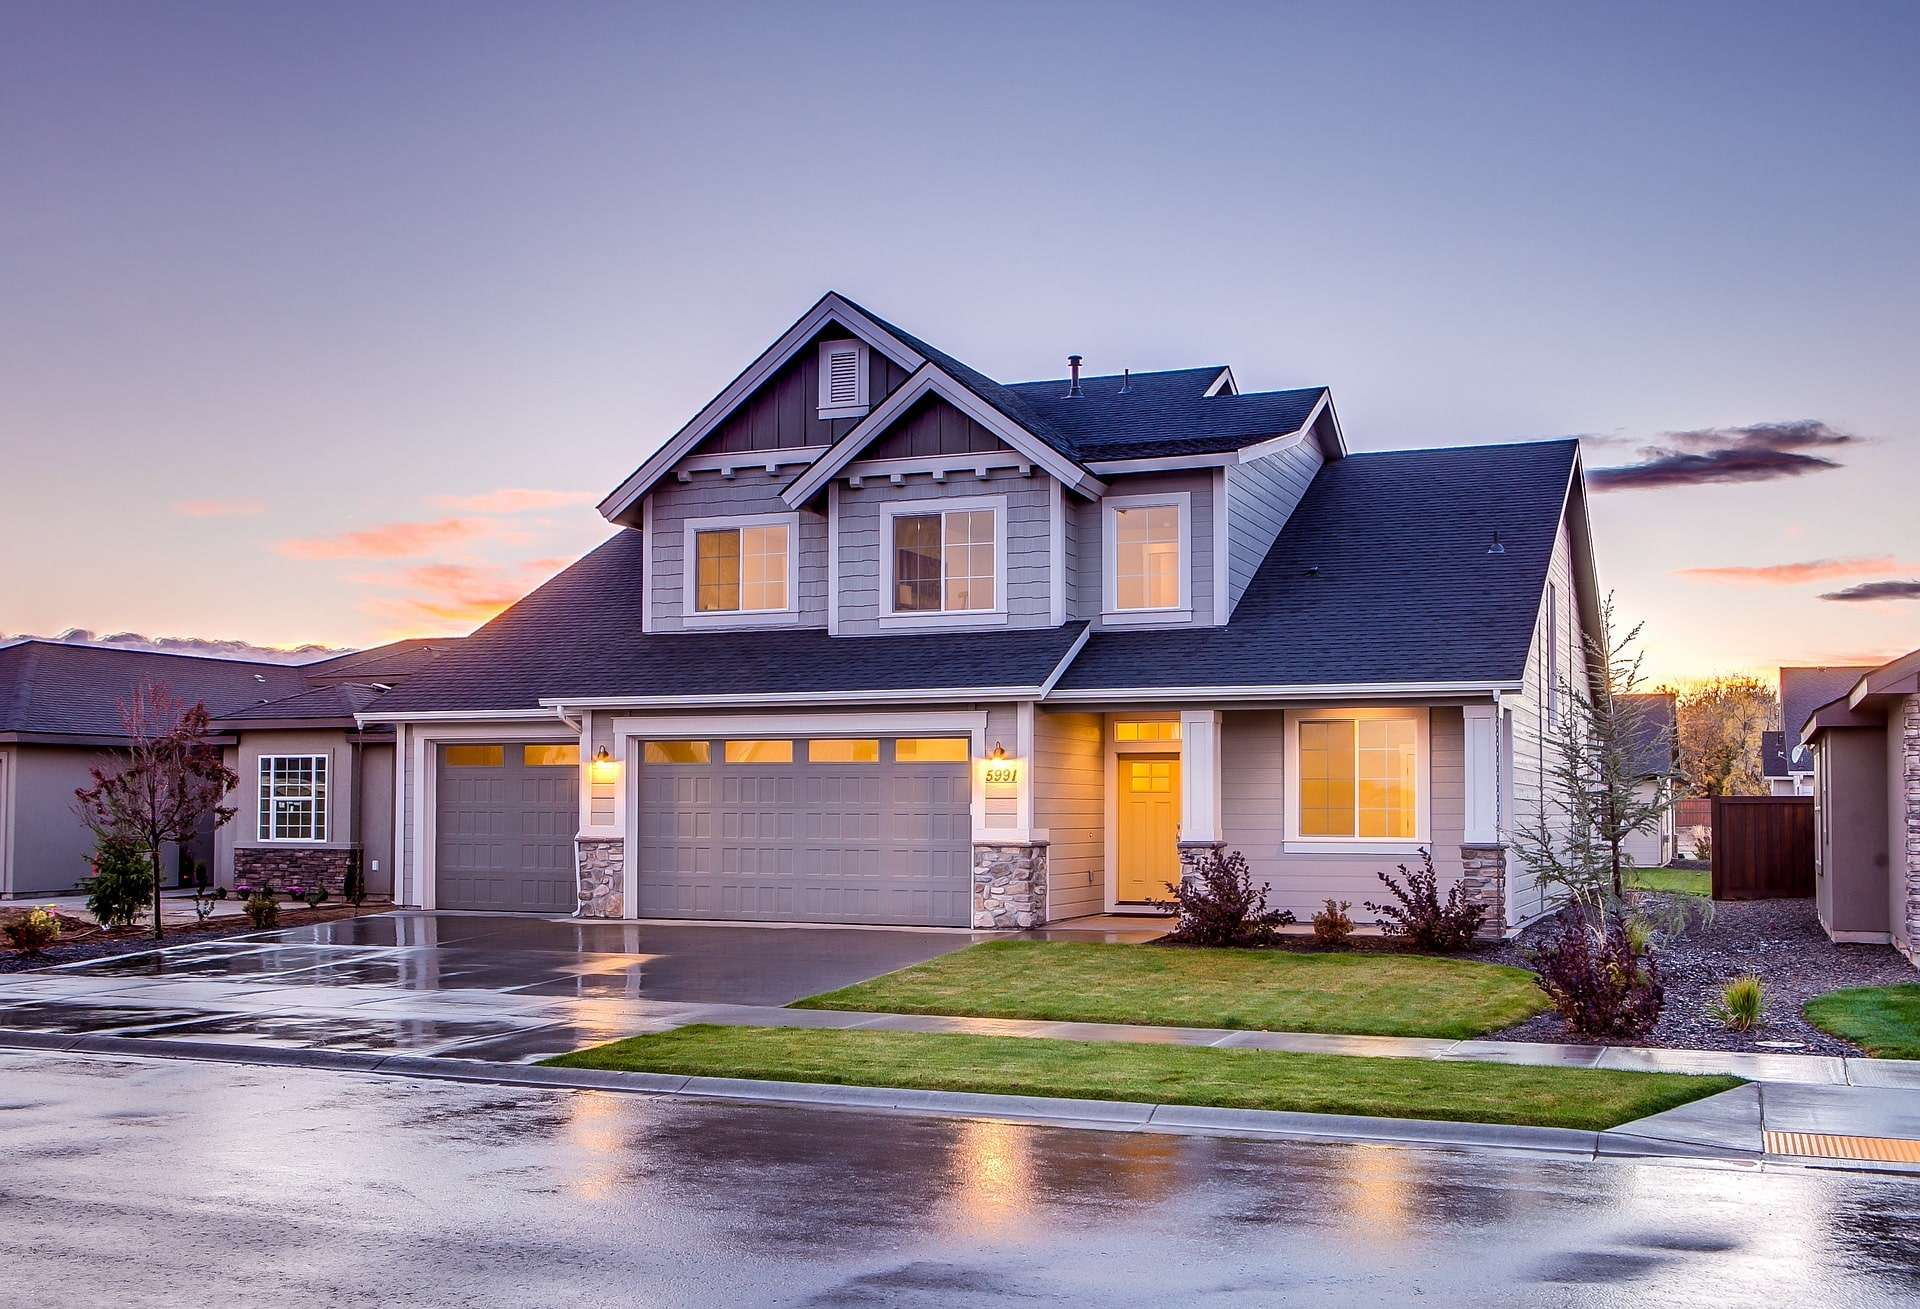 Lead generation in the real estate industry